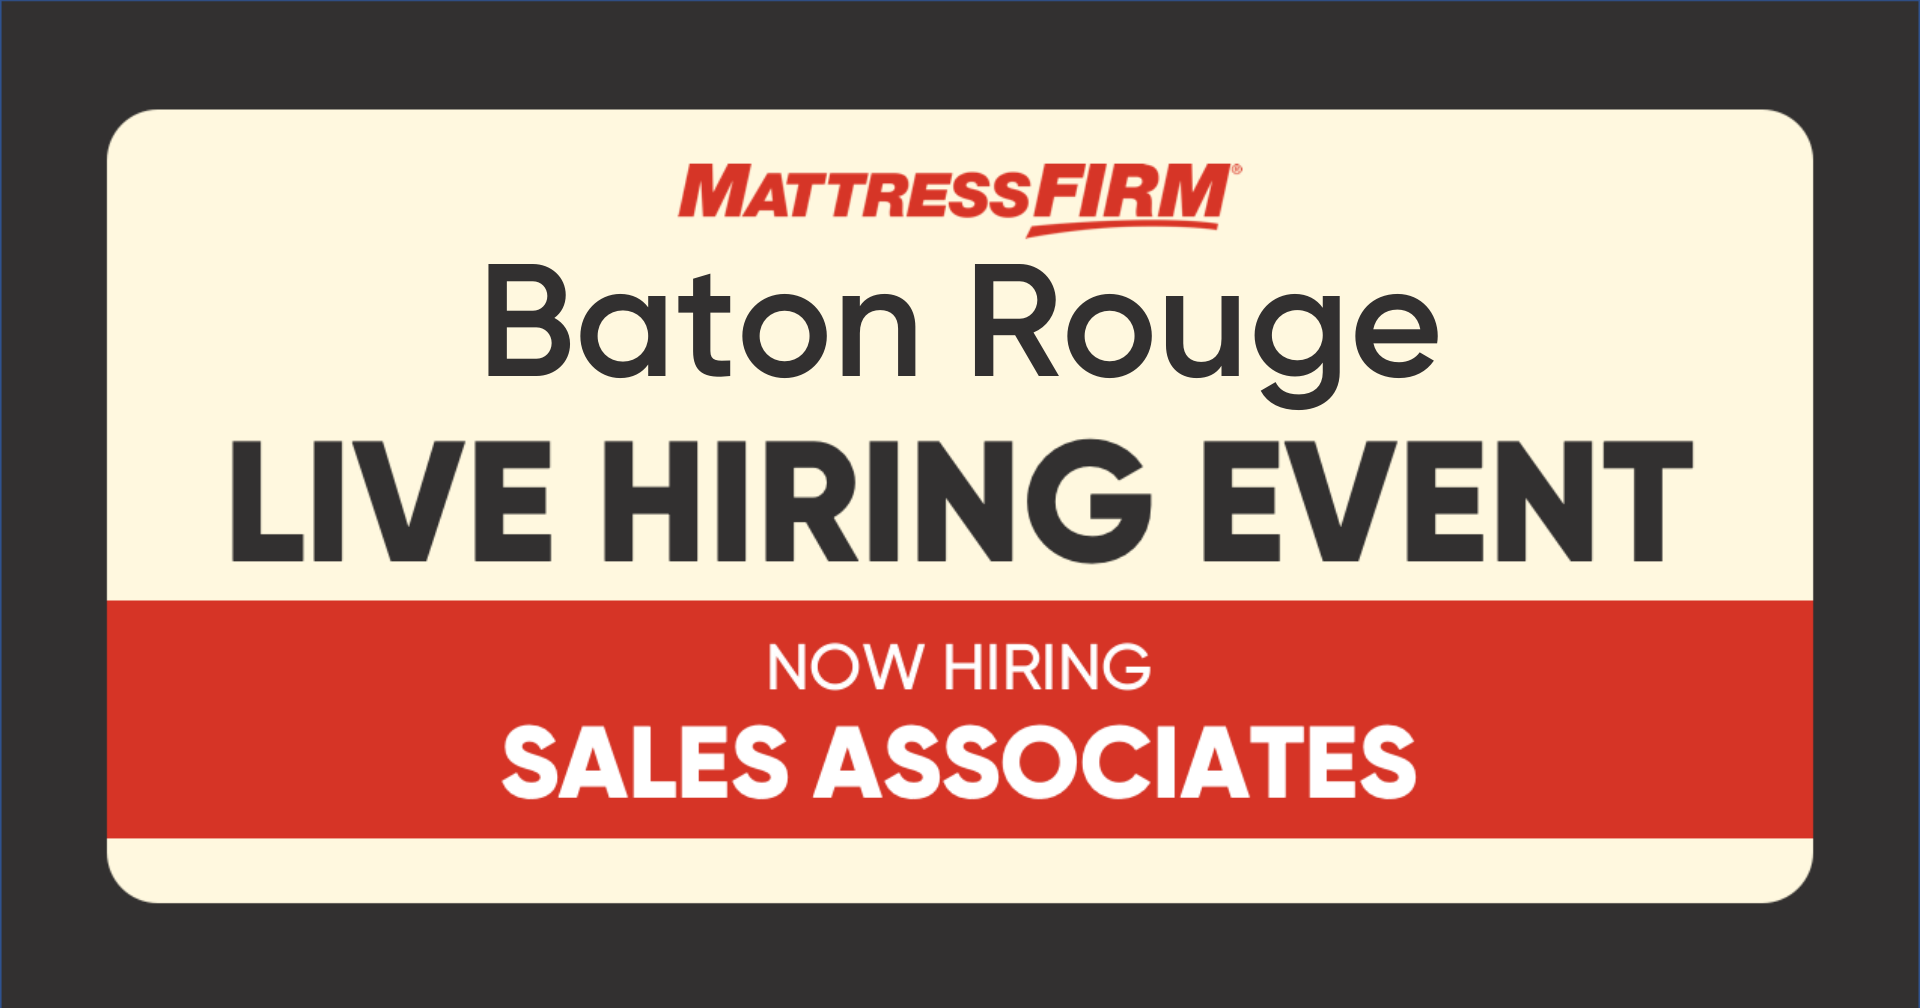 Baton Rouge - On-the-Spot Interviews